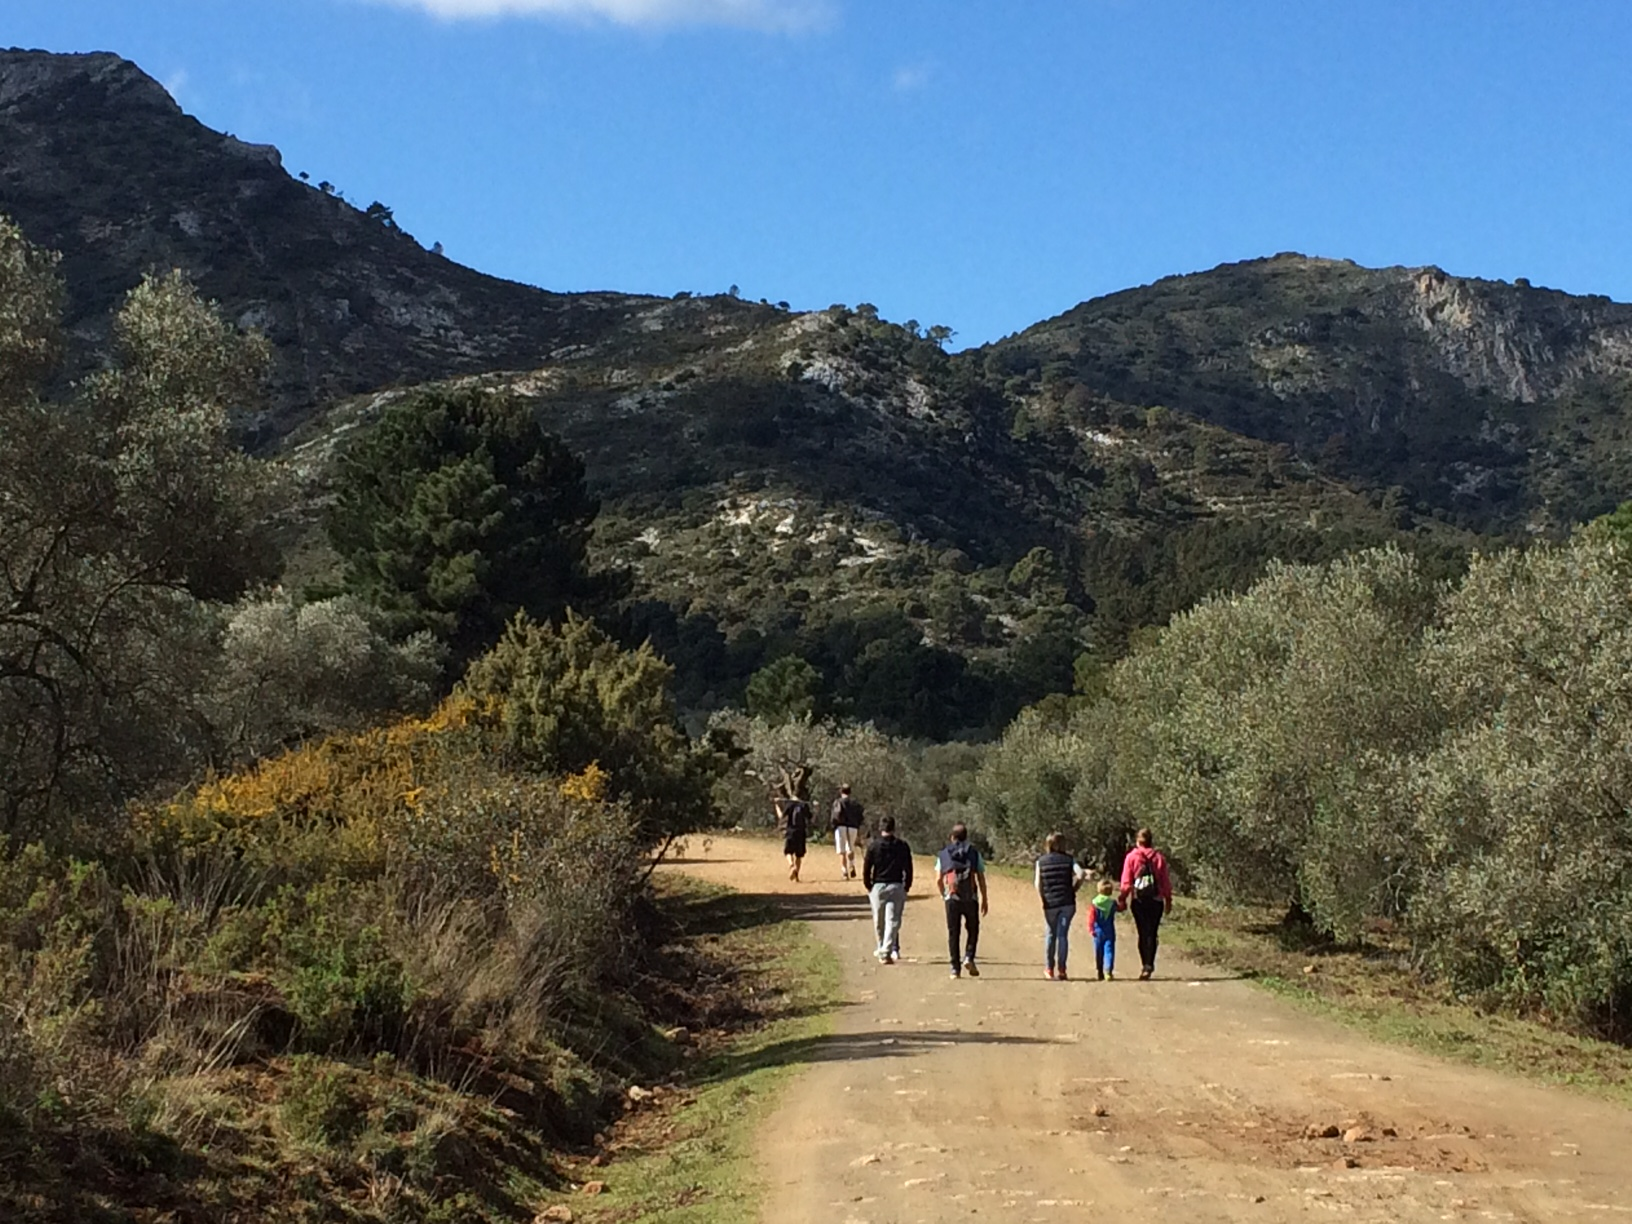 Restaurant in Estepona - Guided hiking tour to La Concha